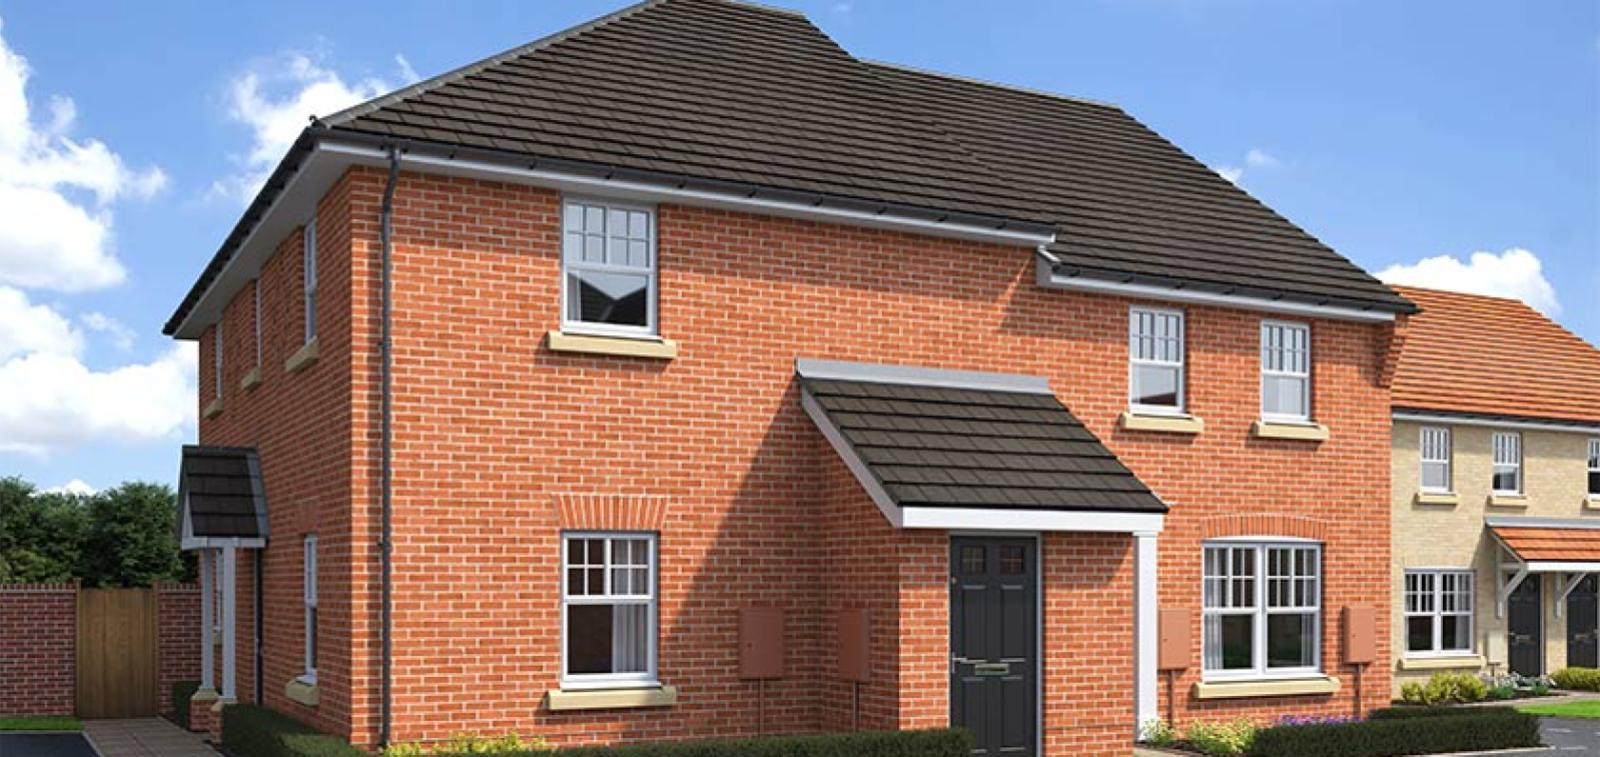 CGI rendering of the Waypoint house type at High Elms Park